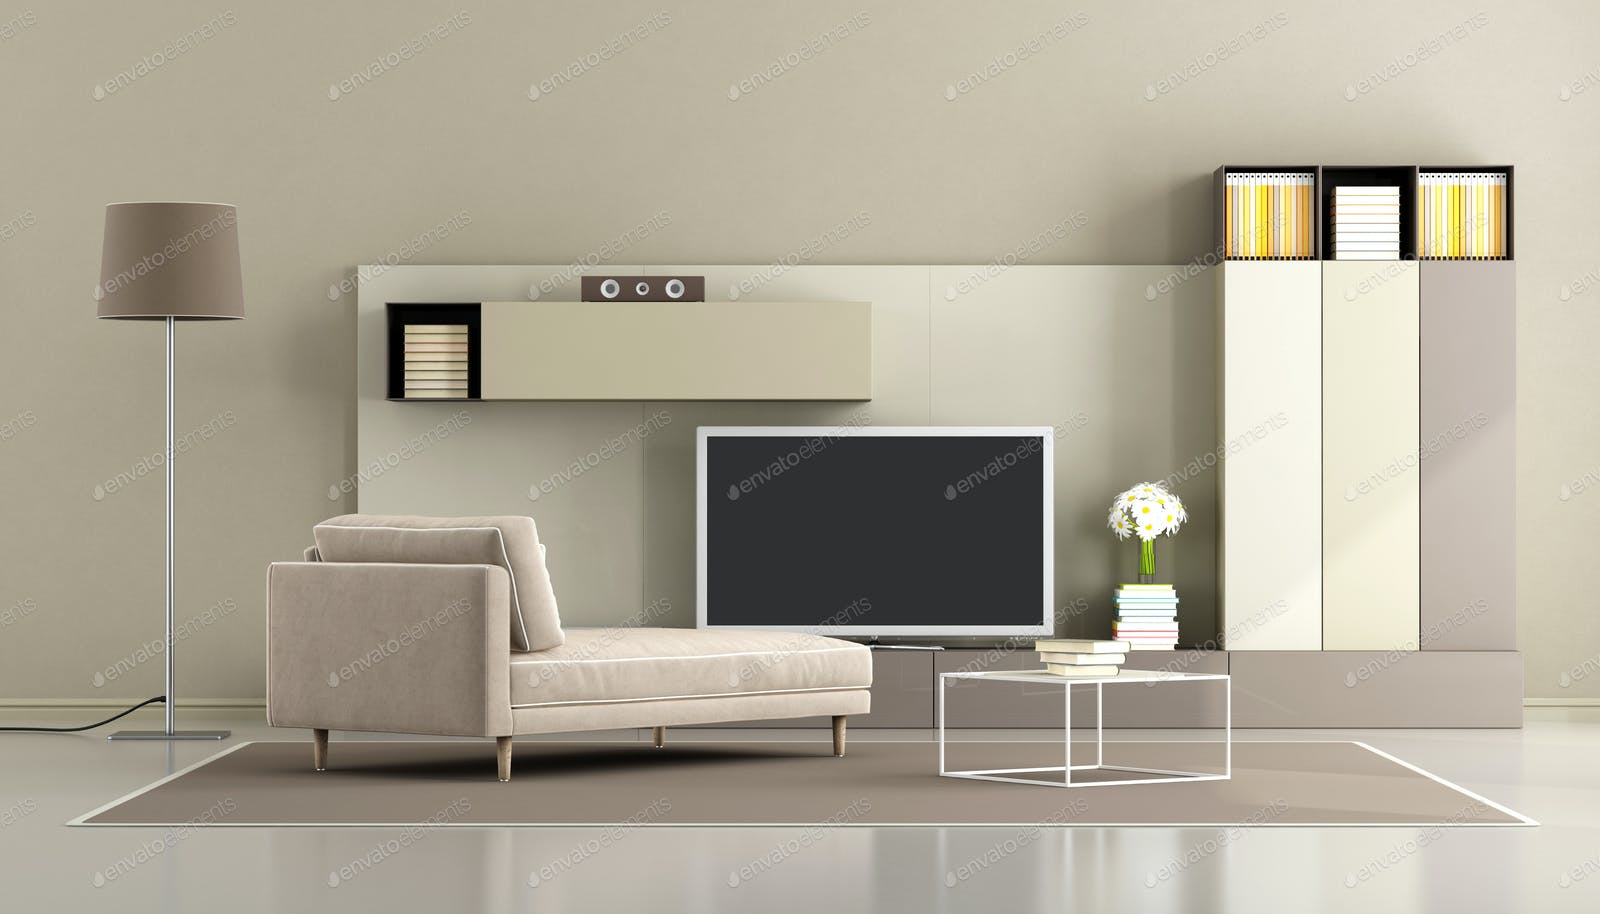 Modern Living Room With Tv Unit Photo By Archideaphoto On Envato Elements